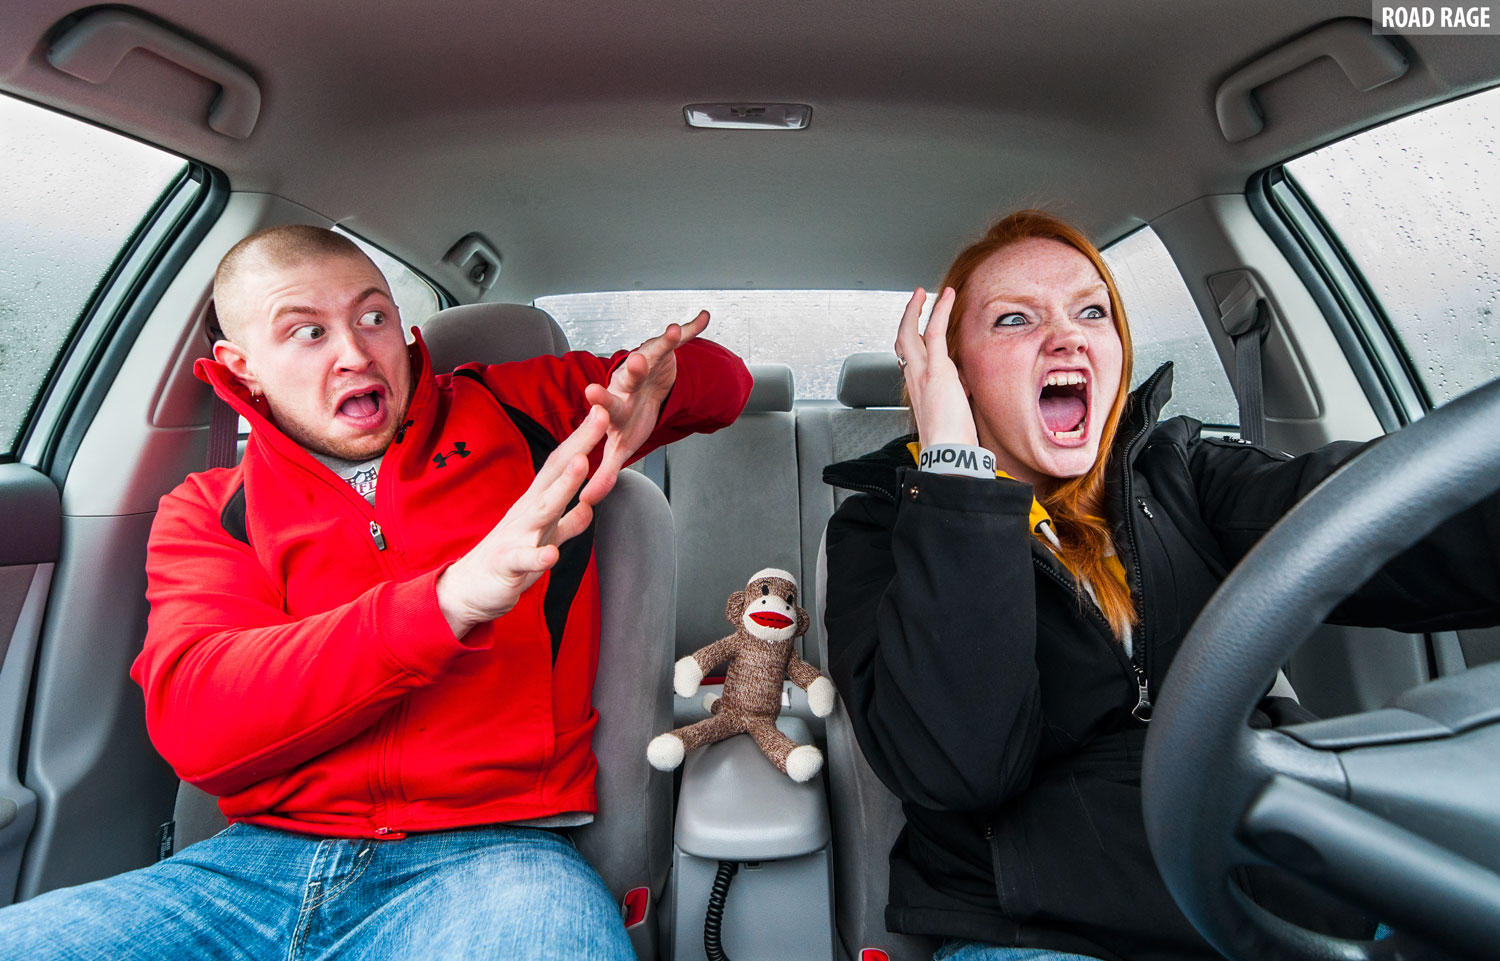 Couple in Car - Road Rage